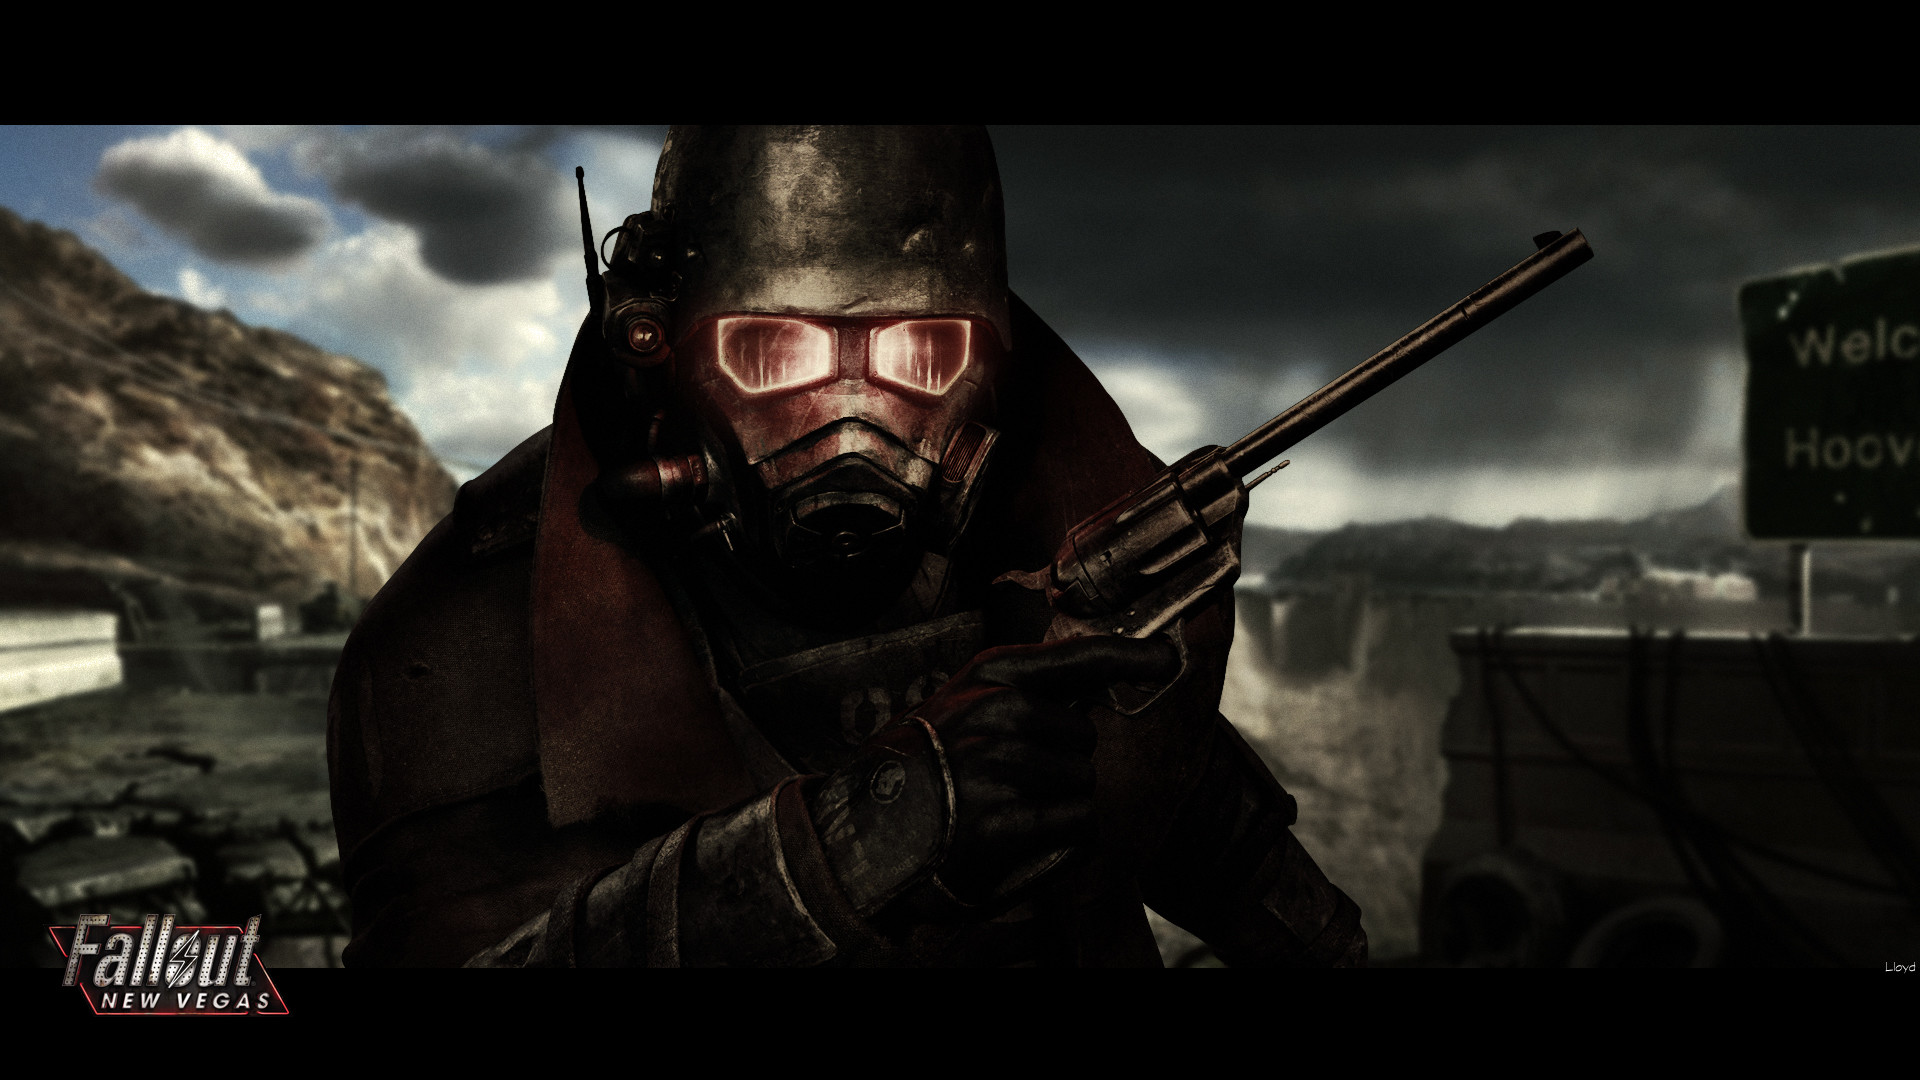 Fallout New Vegas Wallpaper by igotgame1075 Fallout New Vegas Wallpaper by  igotgame1075